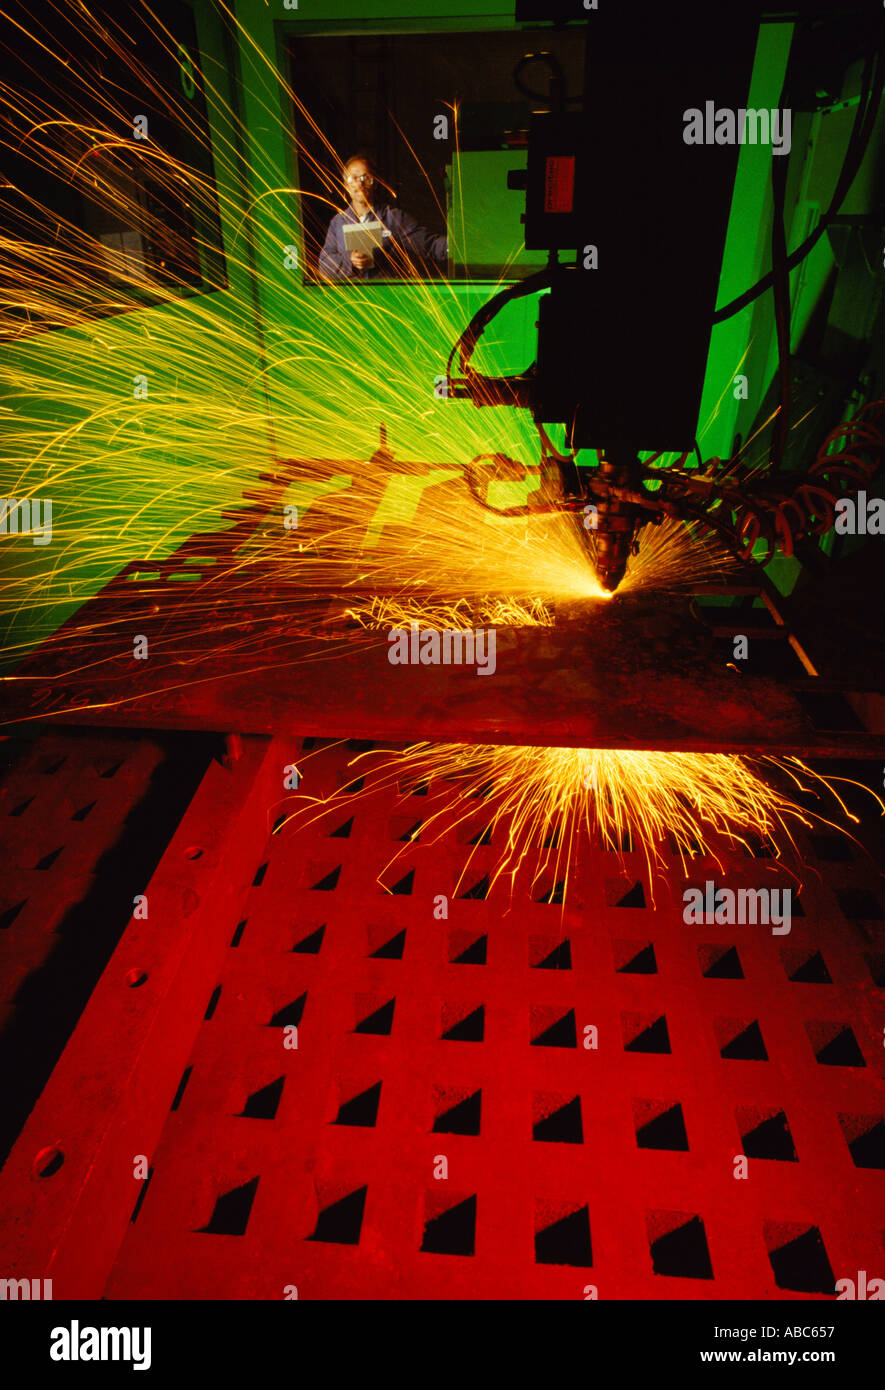 Construction - Precision laser welding procedure on missile launch tube parts at a military contract weapons production facility - Stock Image